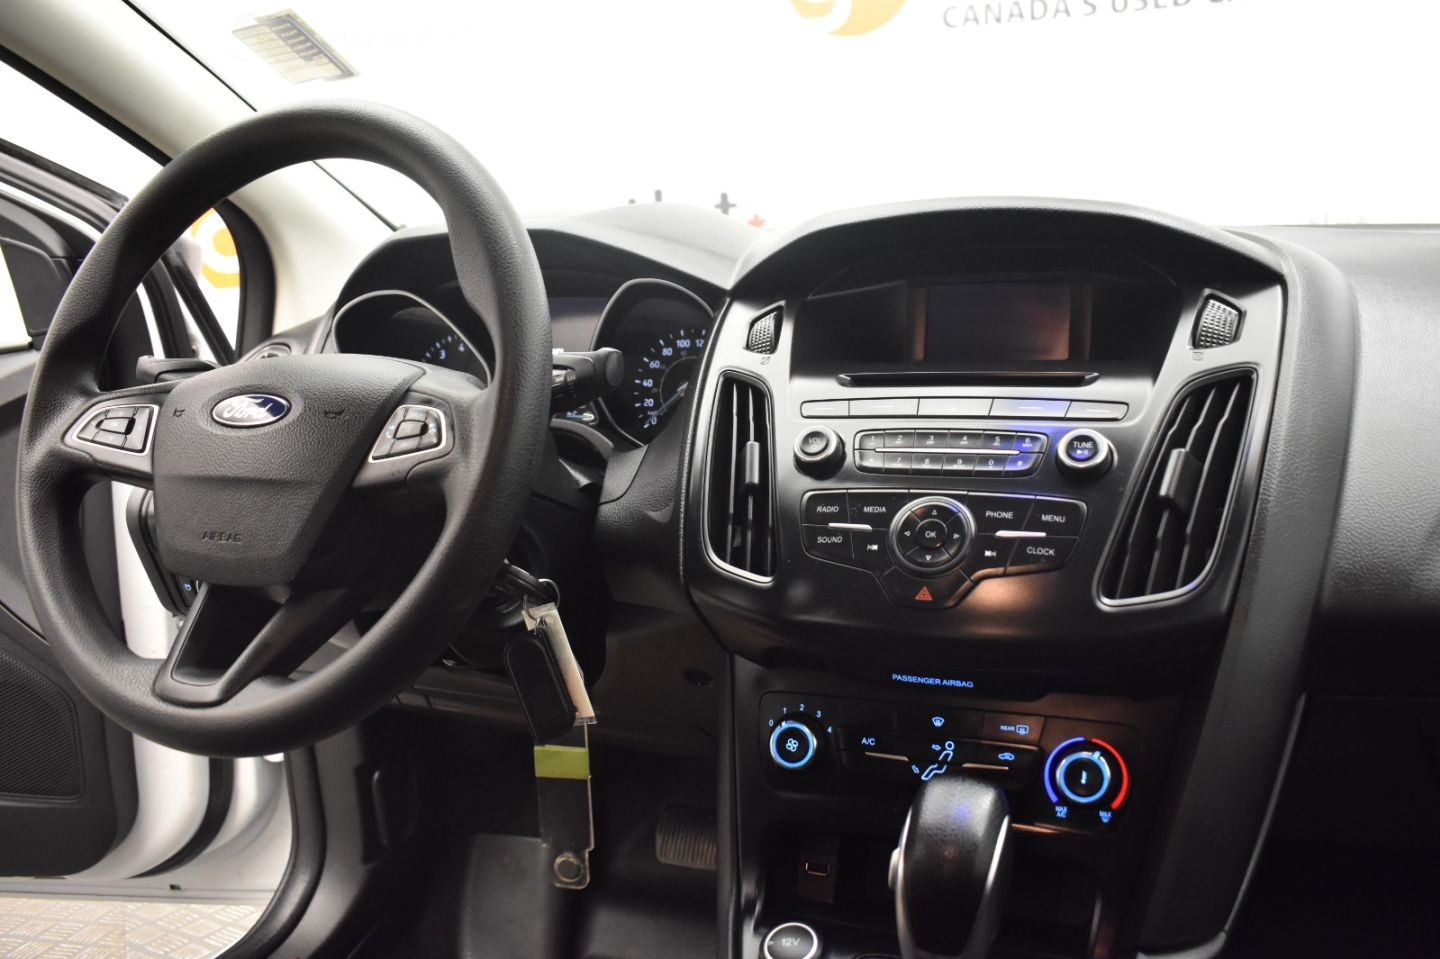 2015 Ford Focus S for sale in Leduc, Alberta